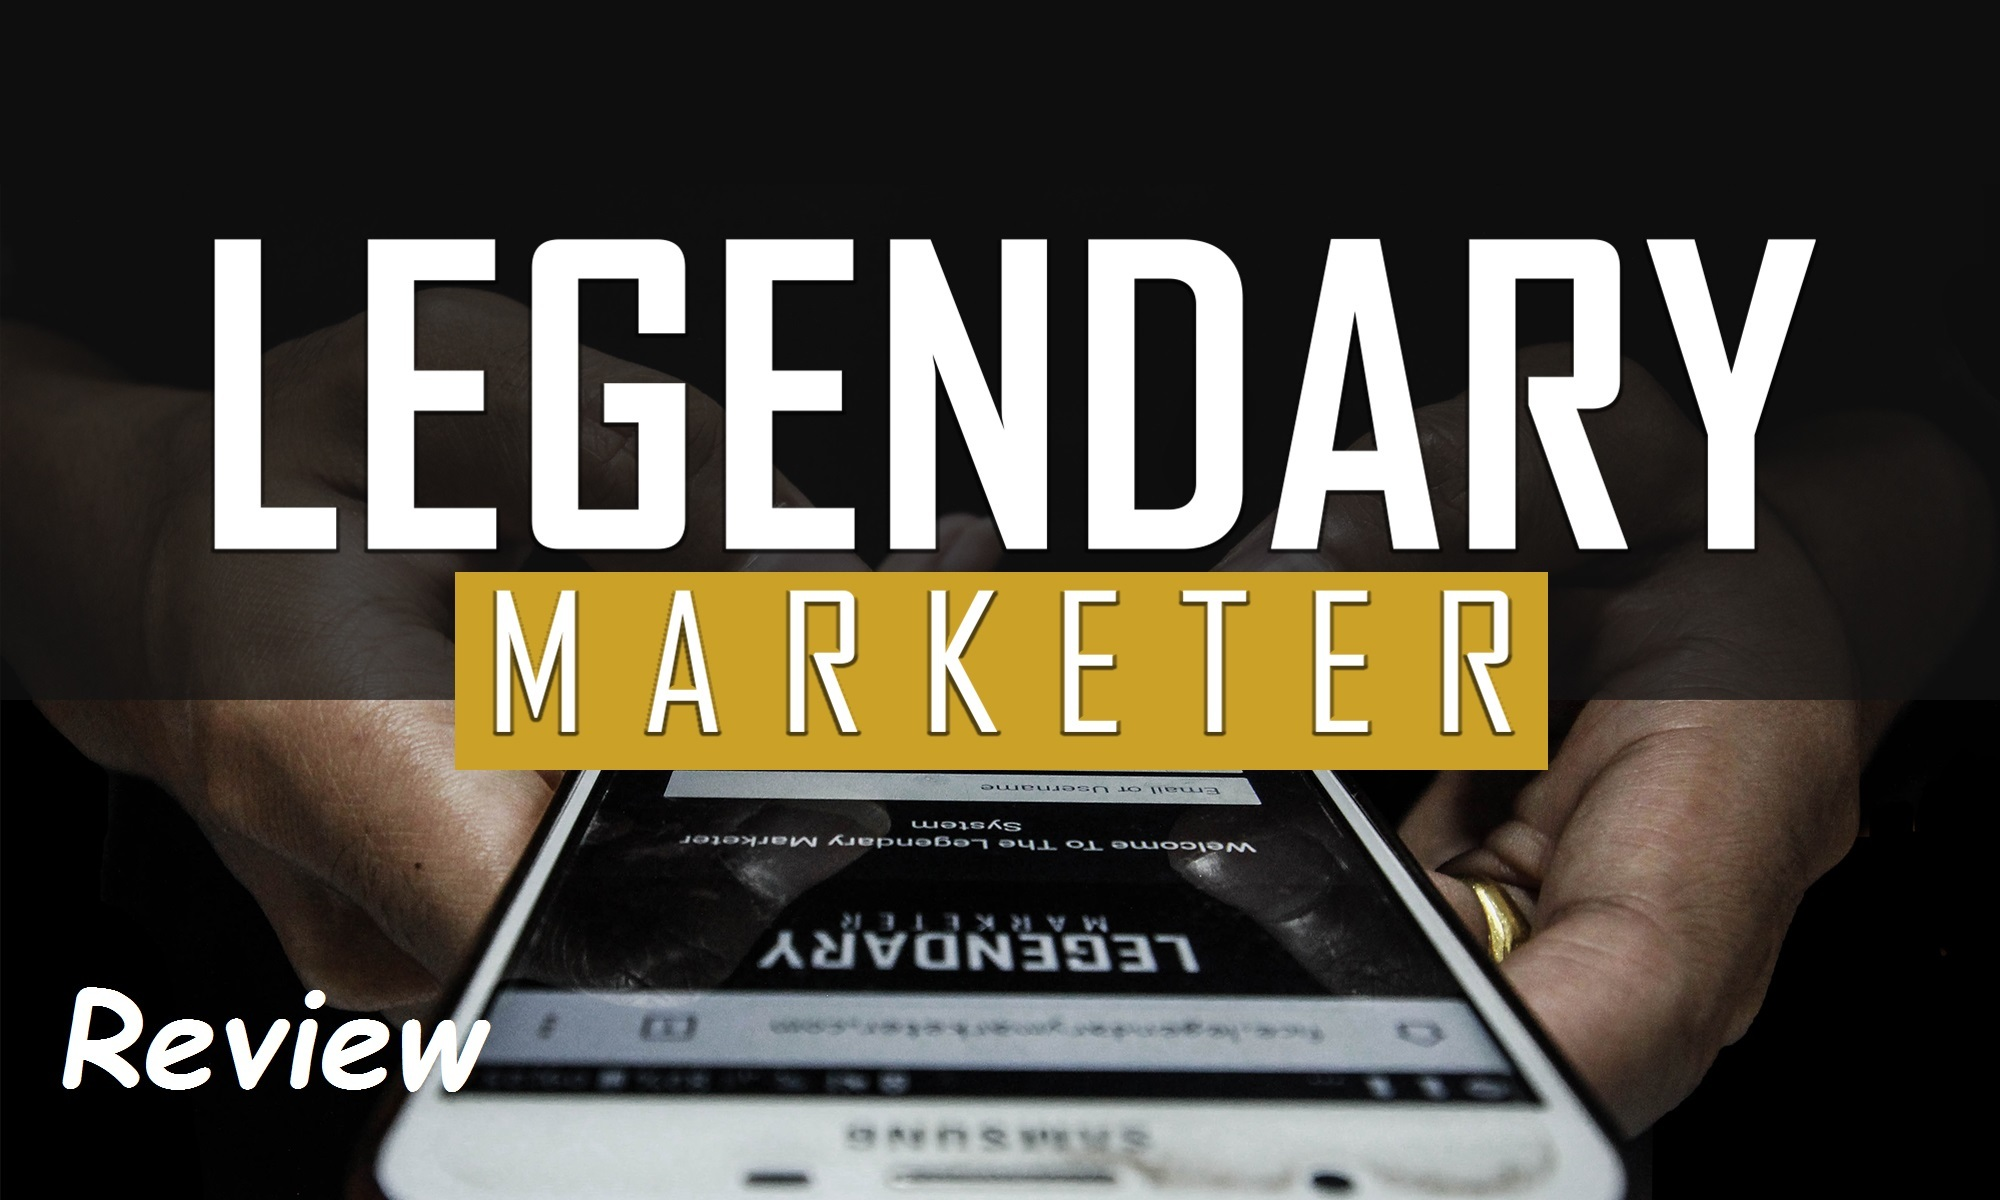 Buy Internet Marketing Program Legendary Marketer Price Details